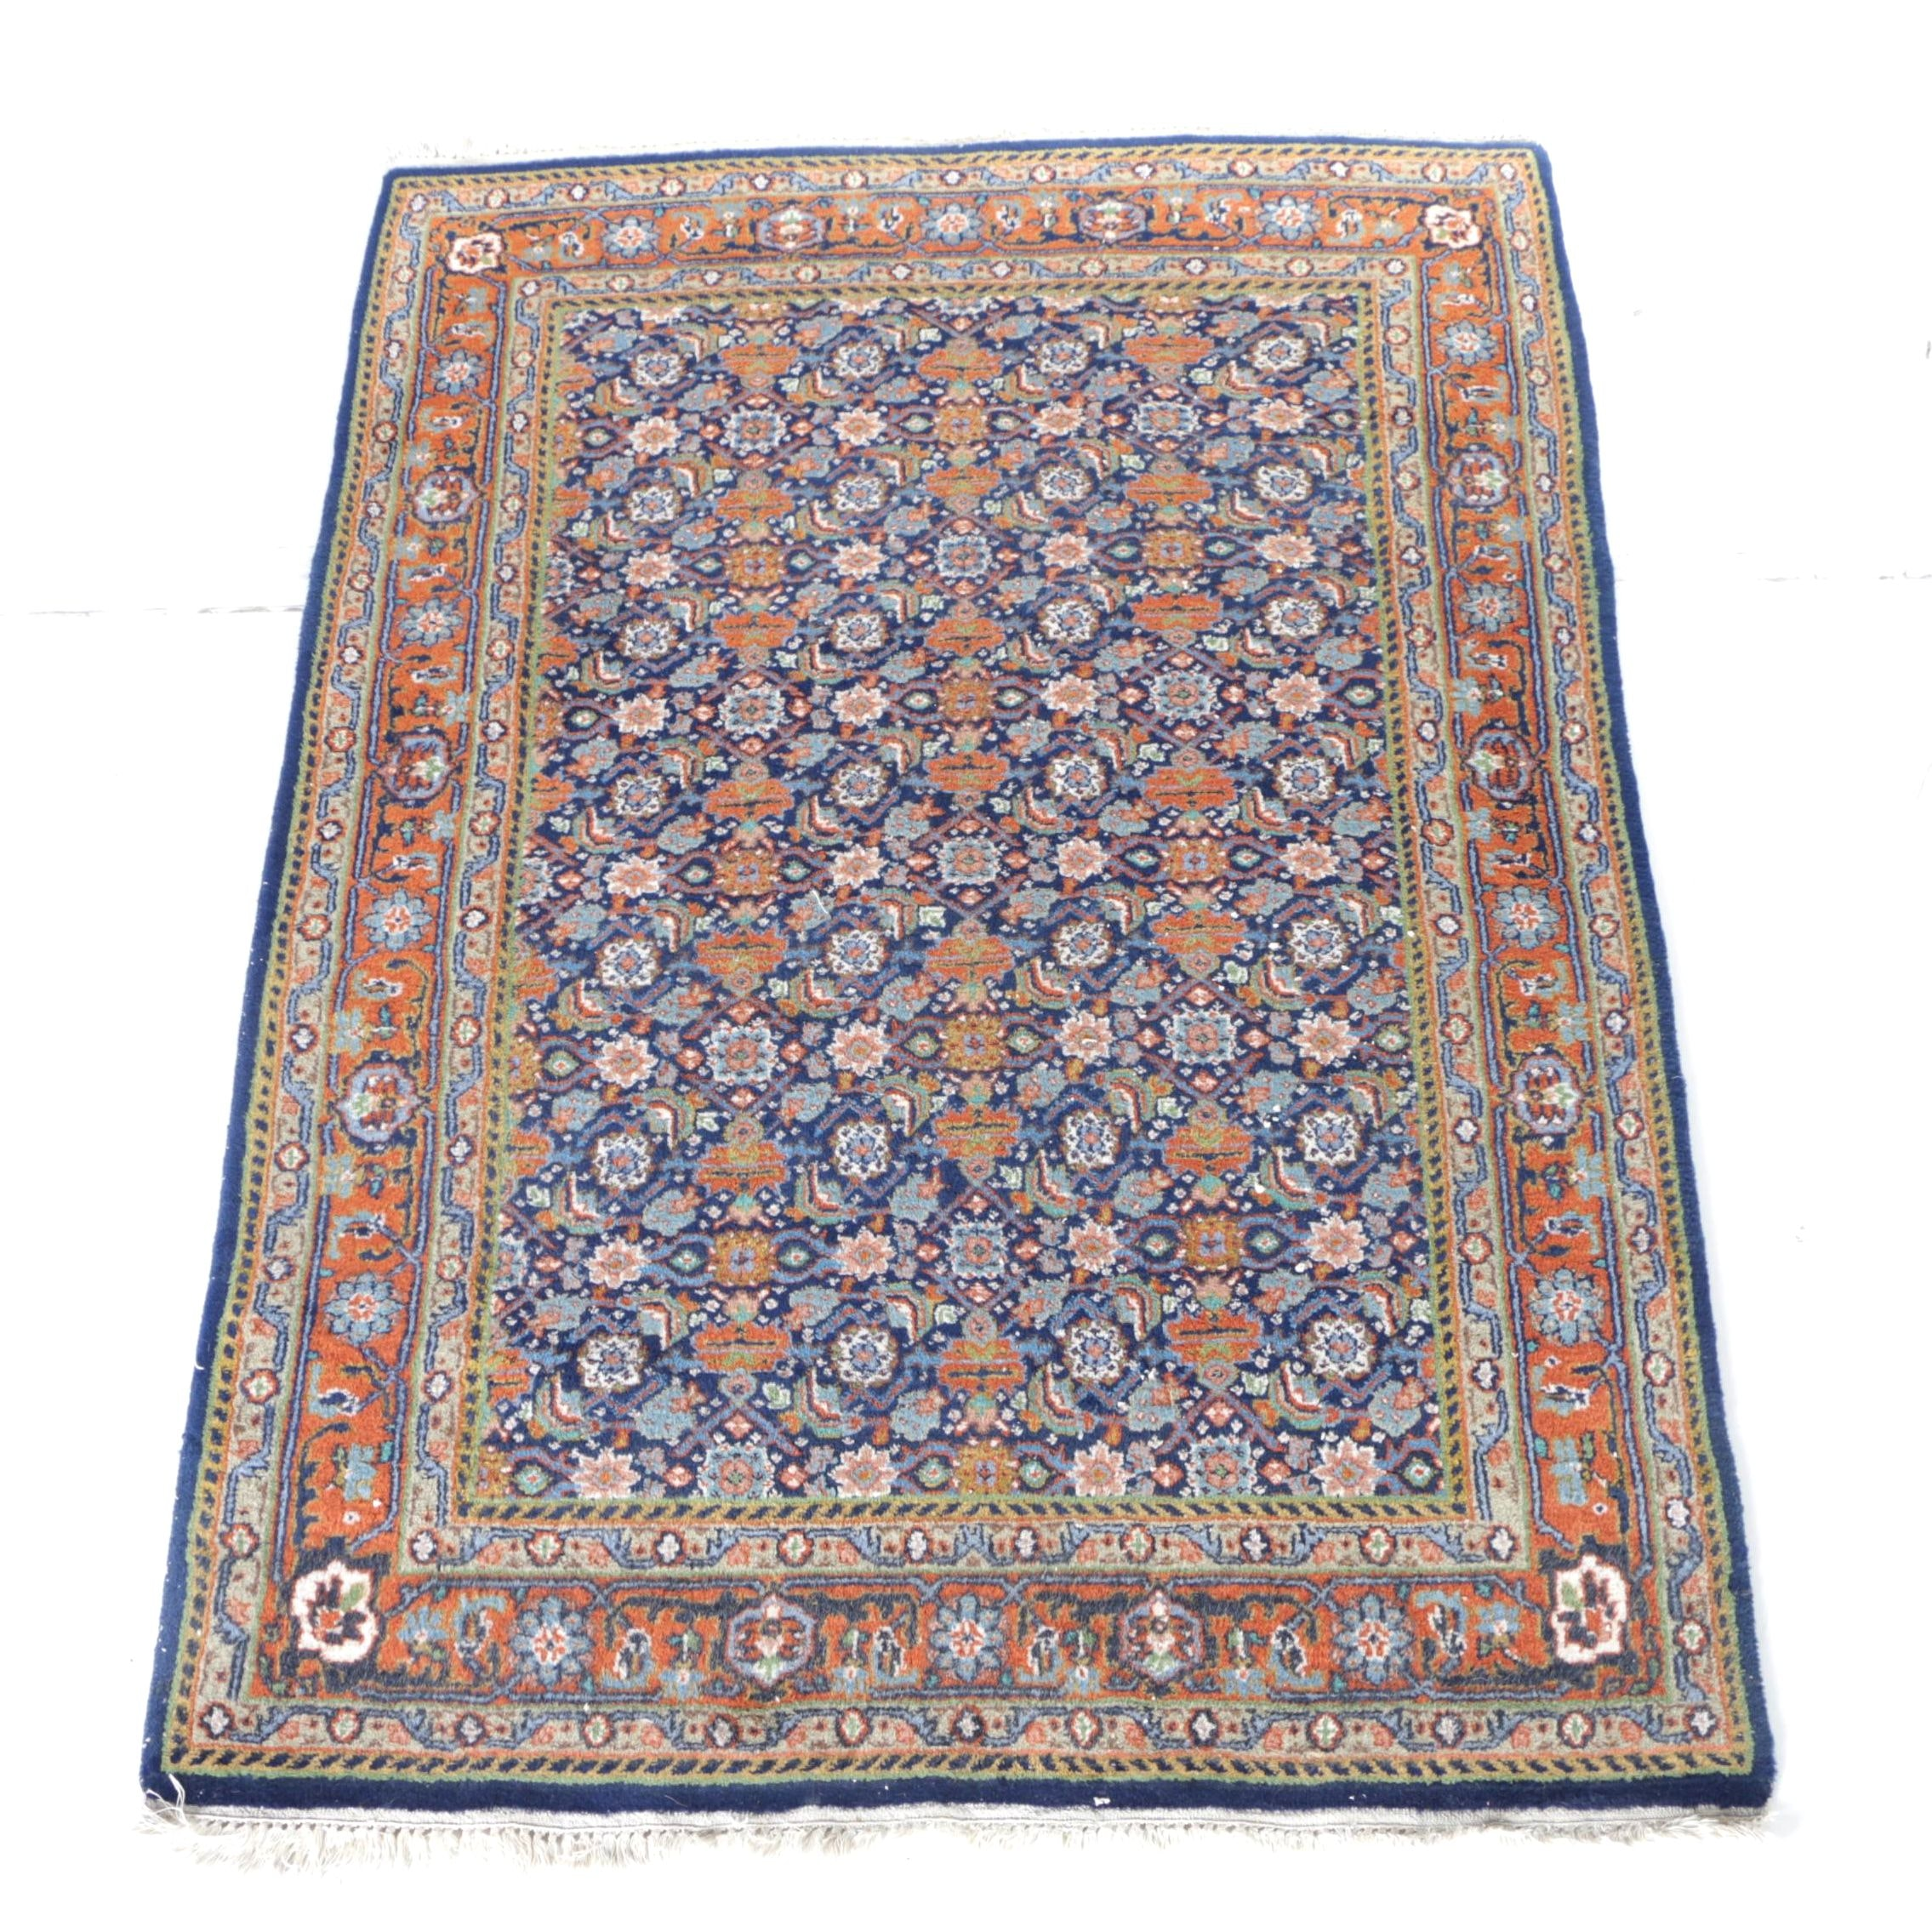 "Hand-Knotted Indo-Persian ""Herati"" Area Rug"